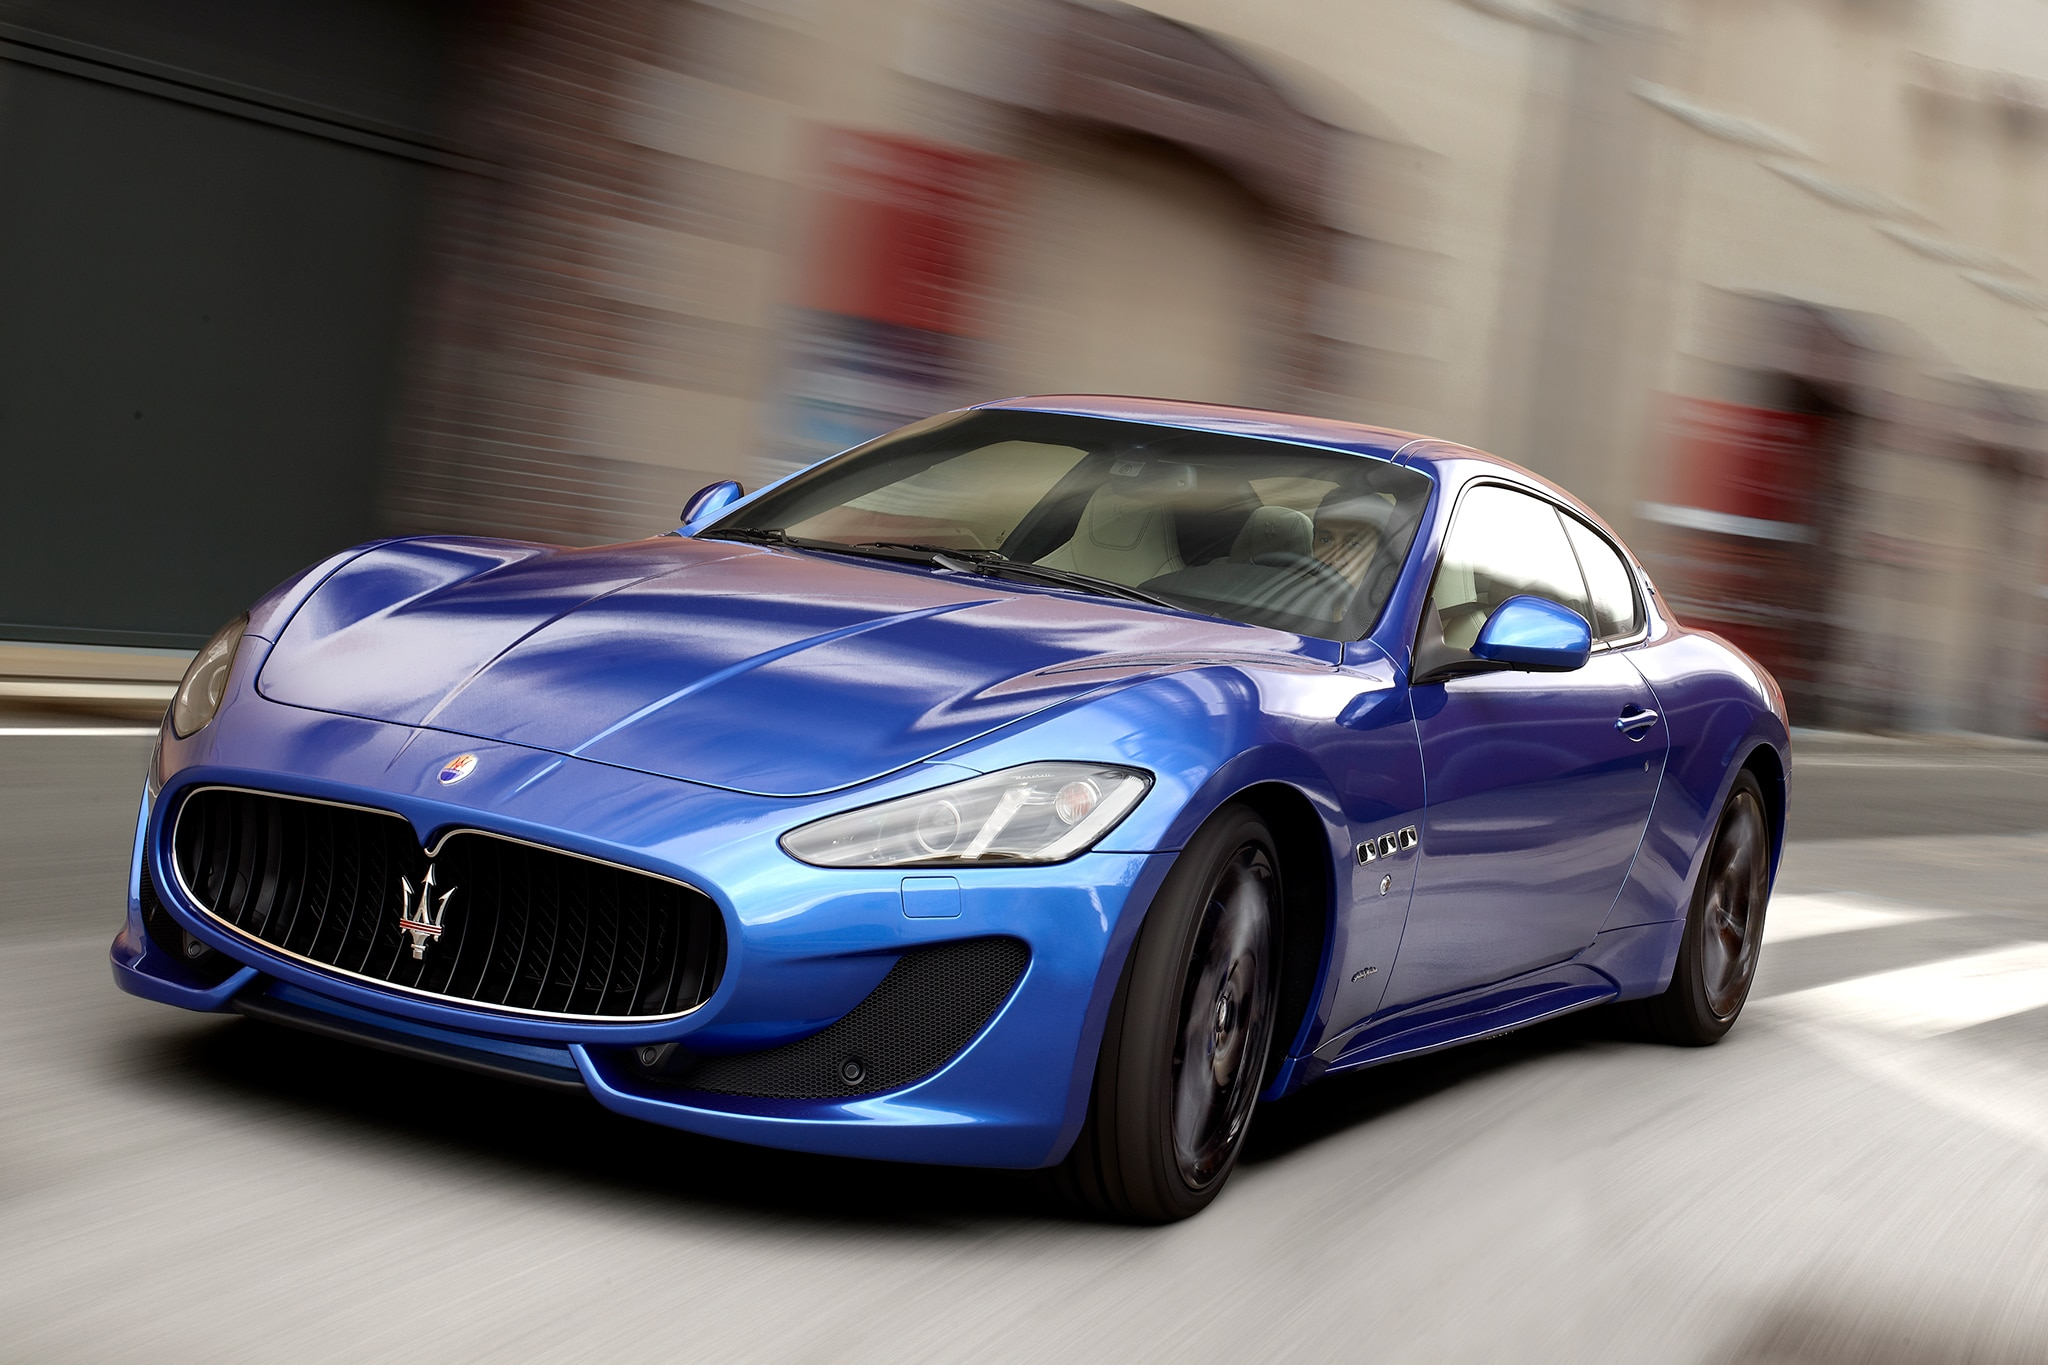 http://st.automobilemag.com/uploads/sites/10/2015/09/2013-Maserati-GranTurismo-Sport-front-drivers-three-quarters-in-motion-close.jpg